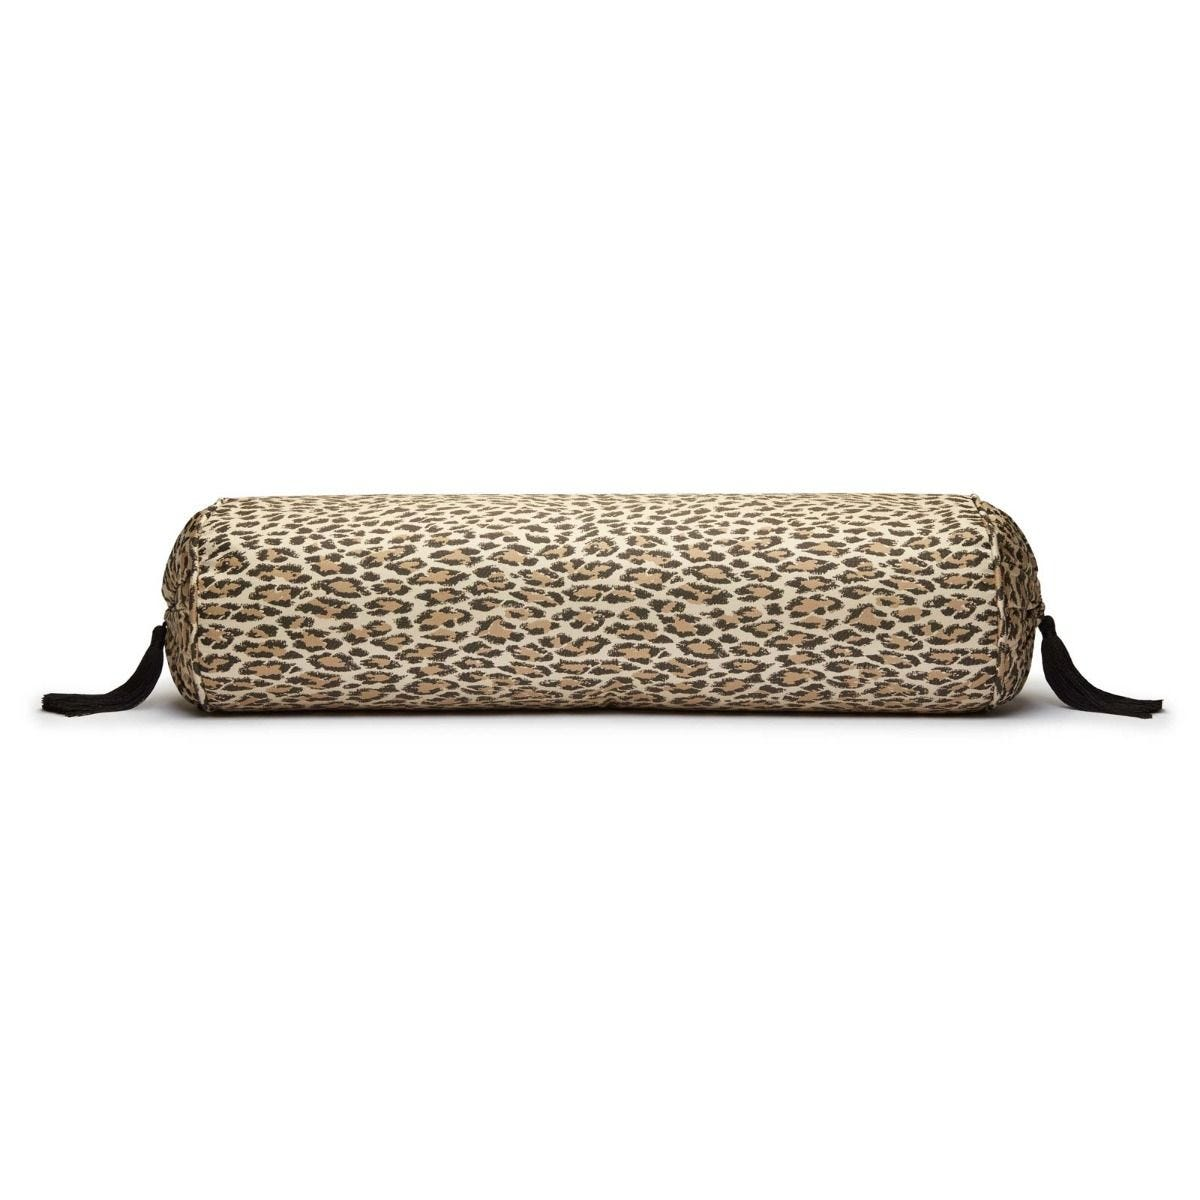 Wild Card Jacquard Bolster Pillow